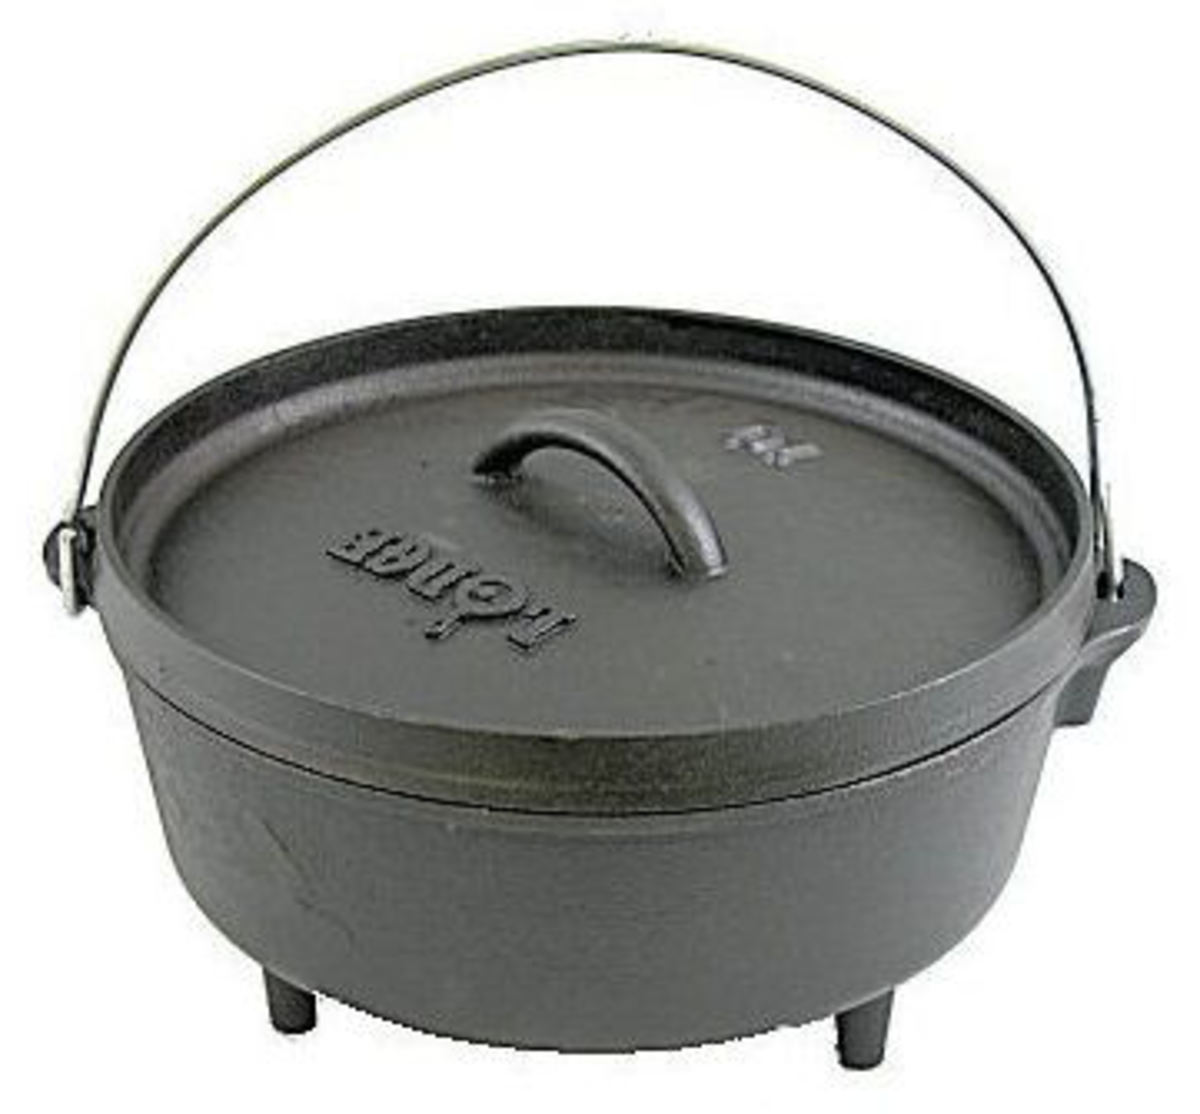 The Lodge 8 qt. Cast Iron Dutch Oven